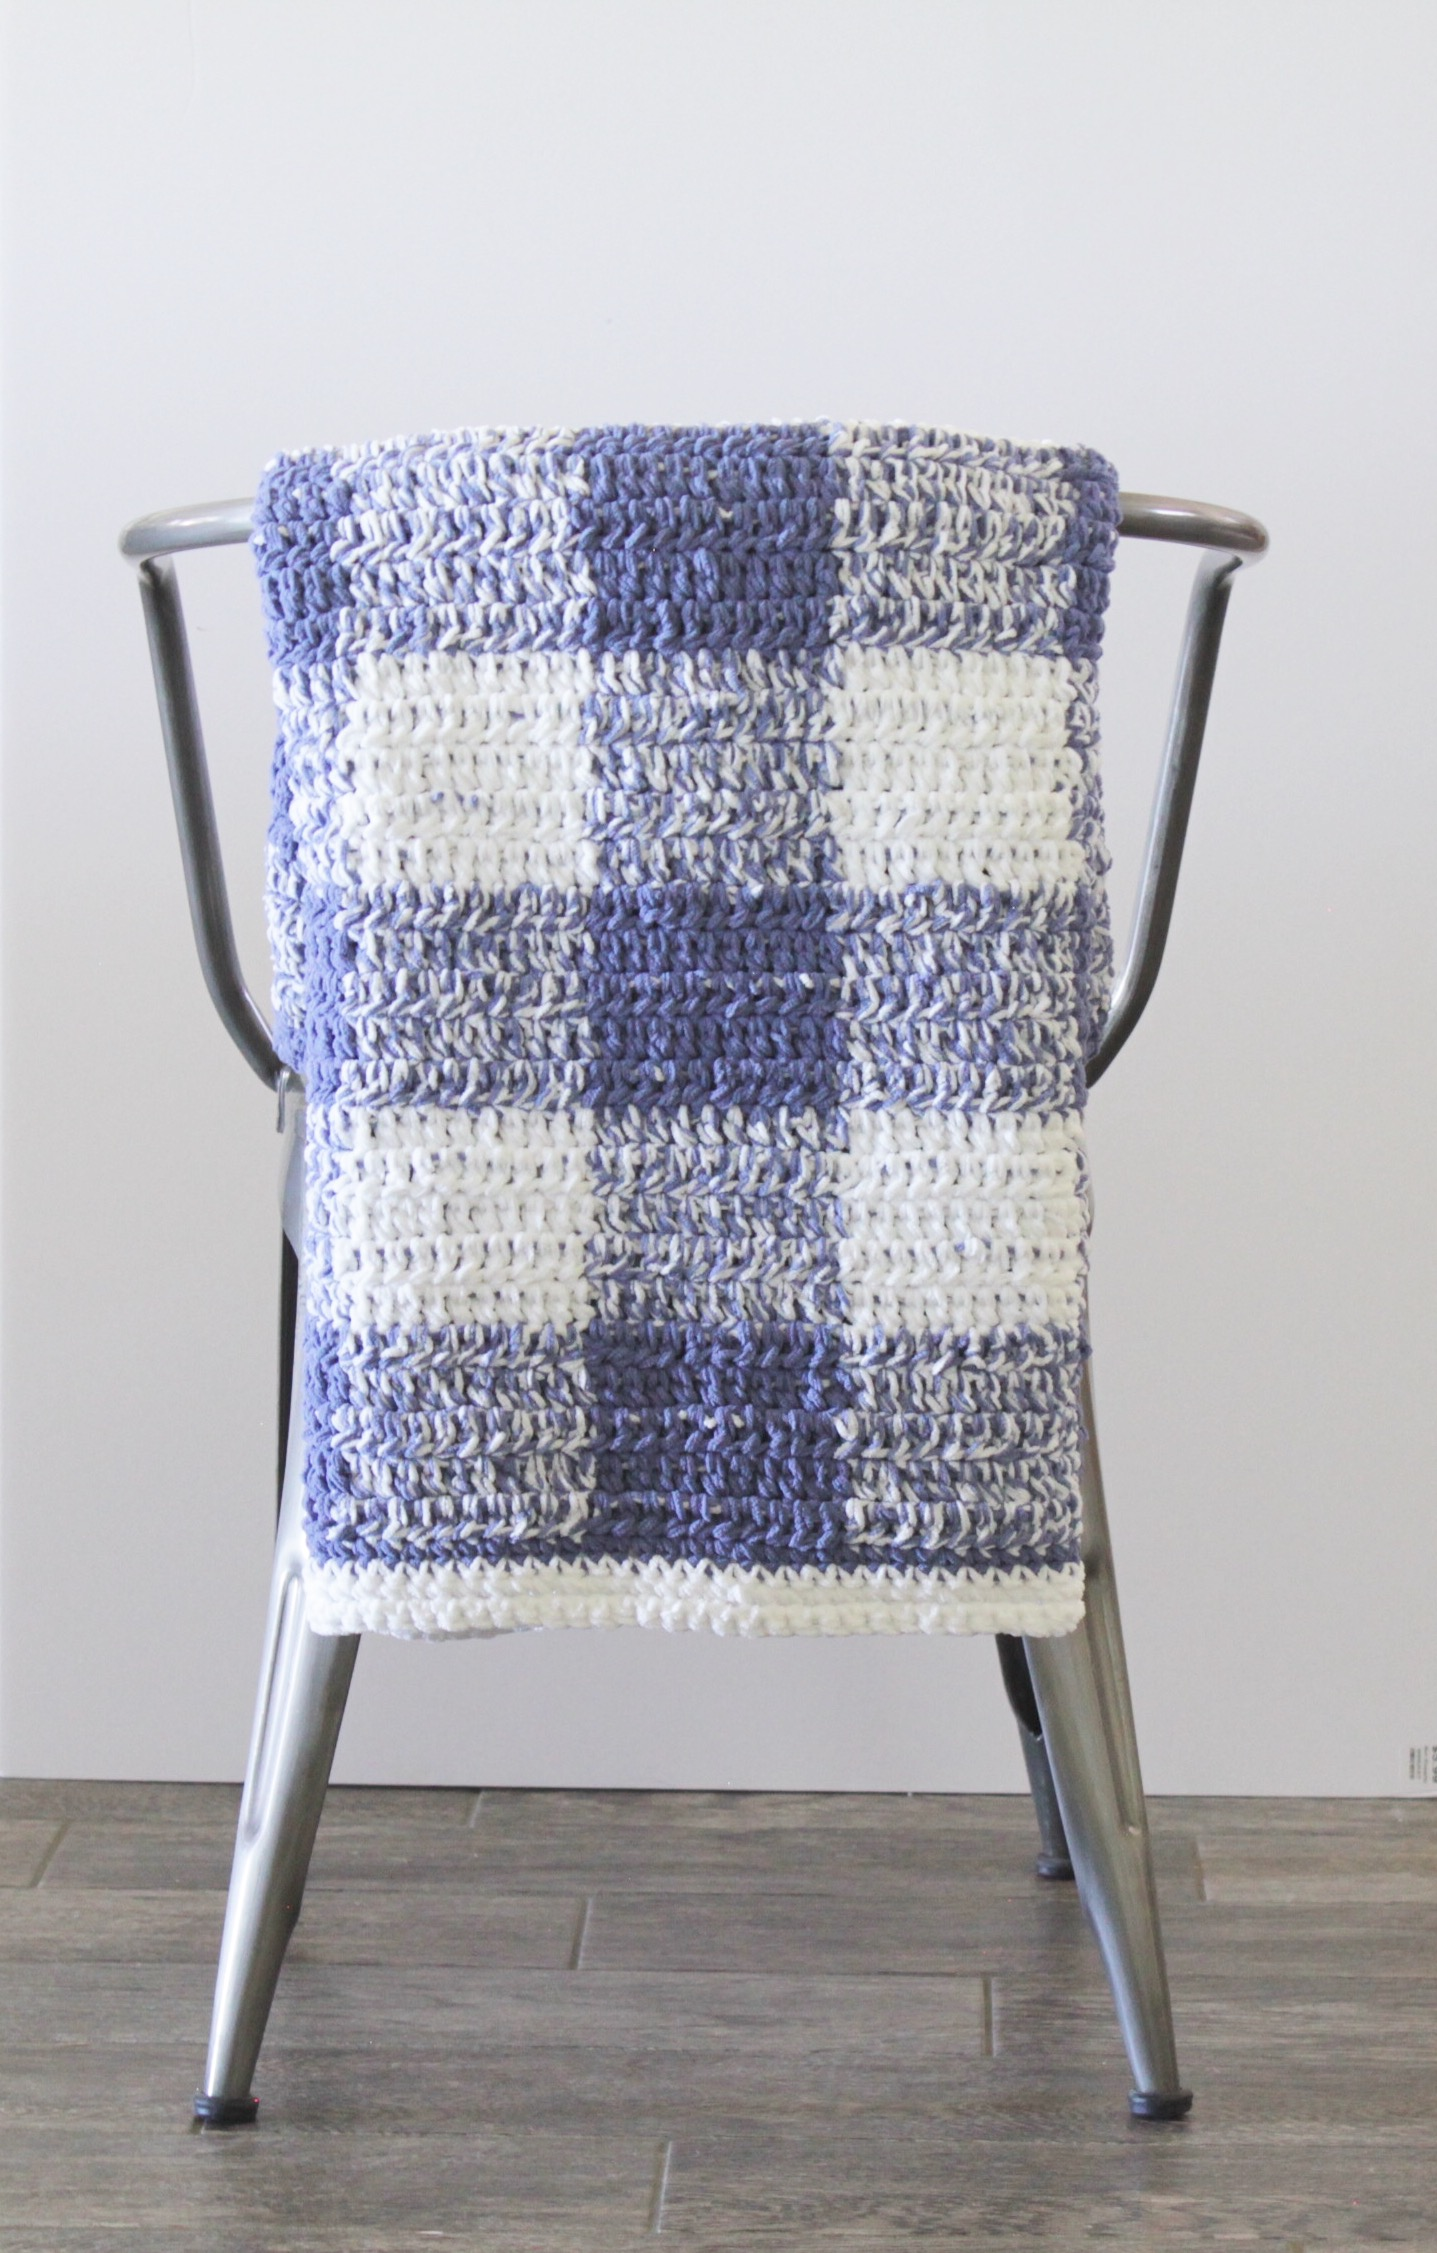 Crochet Blue Gingham Blanket | Daisy Farm Crafts